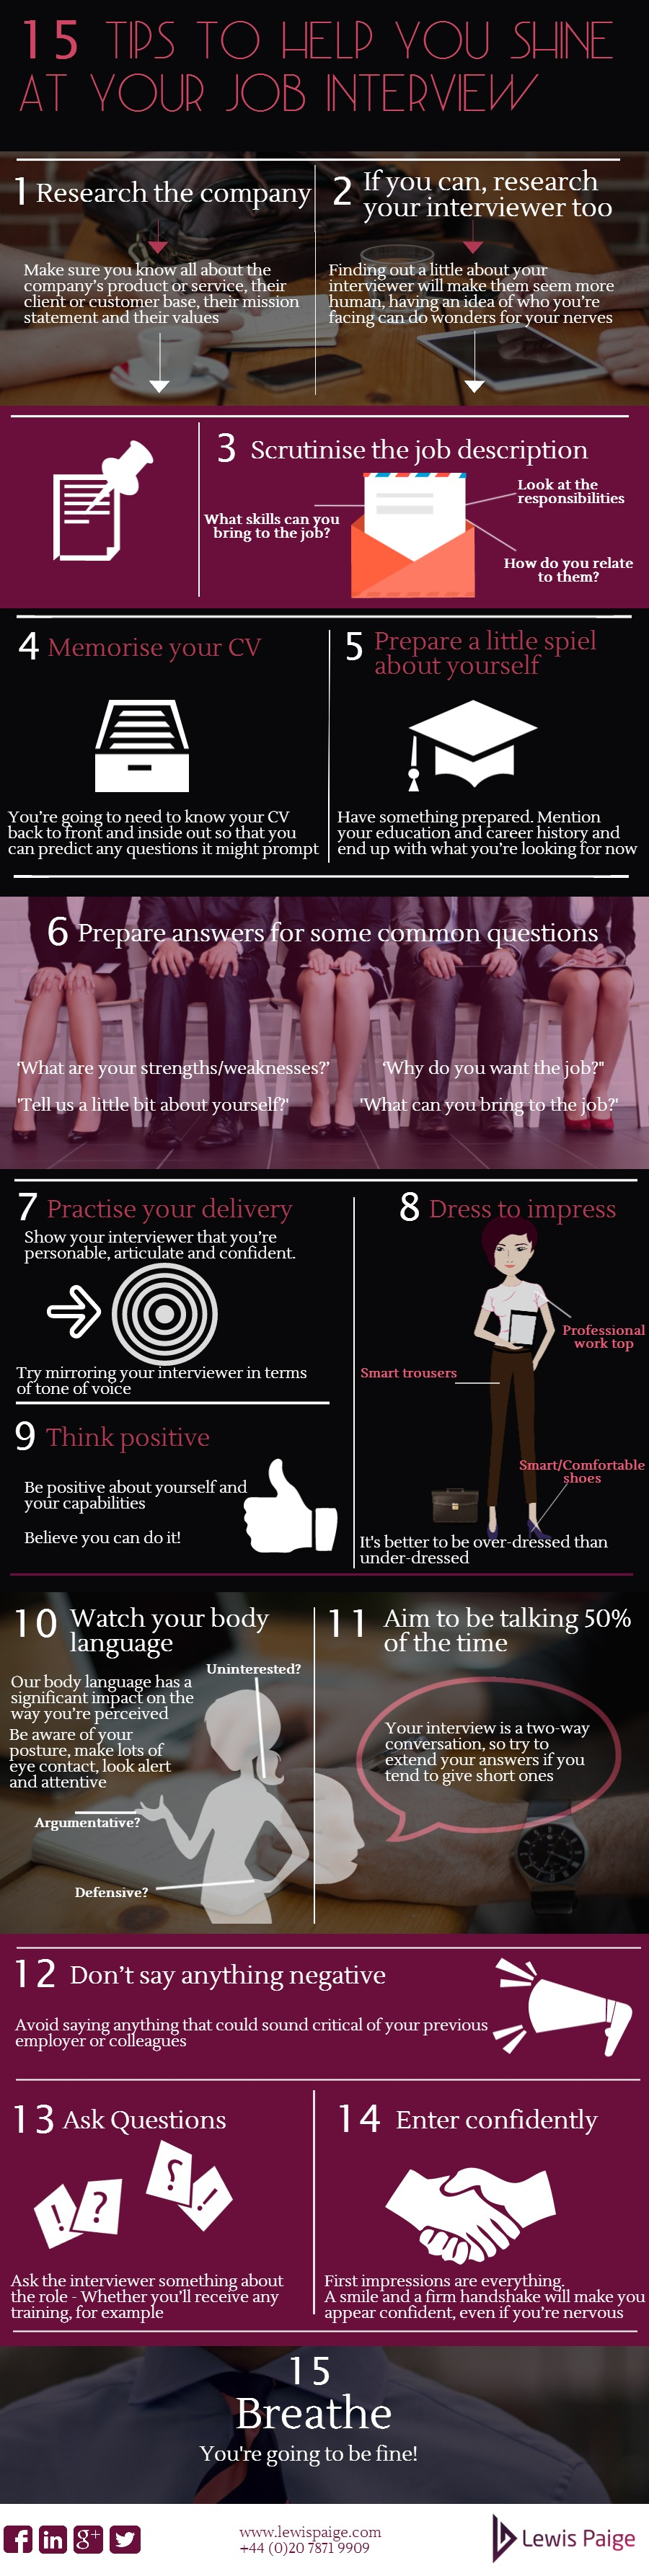 tips to help you shine at your job interview infographic interview tips infographic